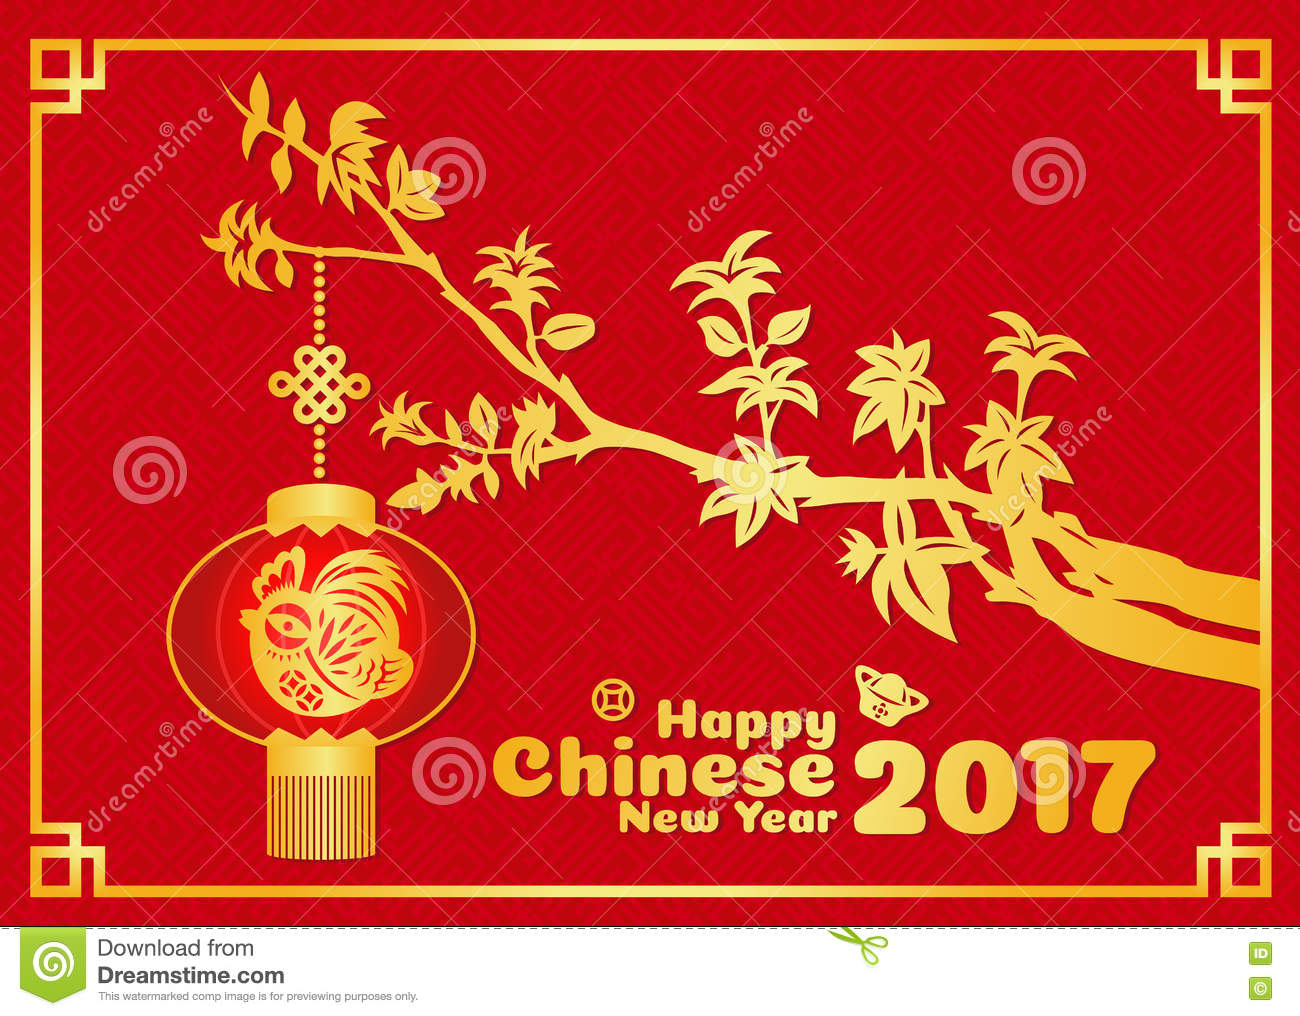 happy chinese new year 2017 card is gold chicken paper cut in lanterns on tree branches